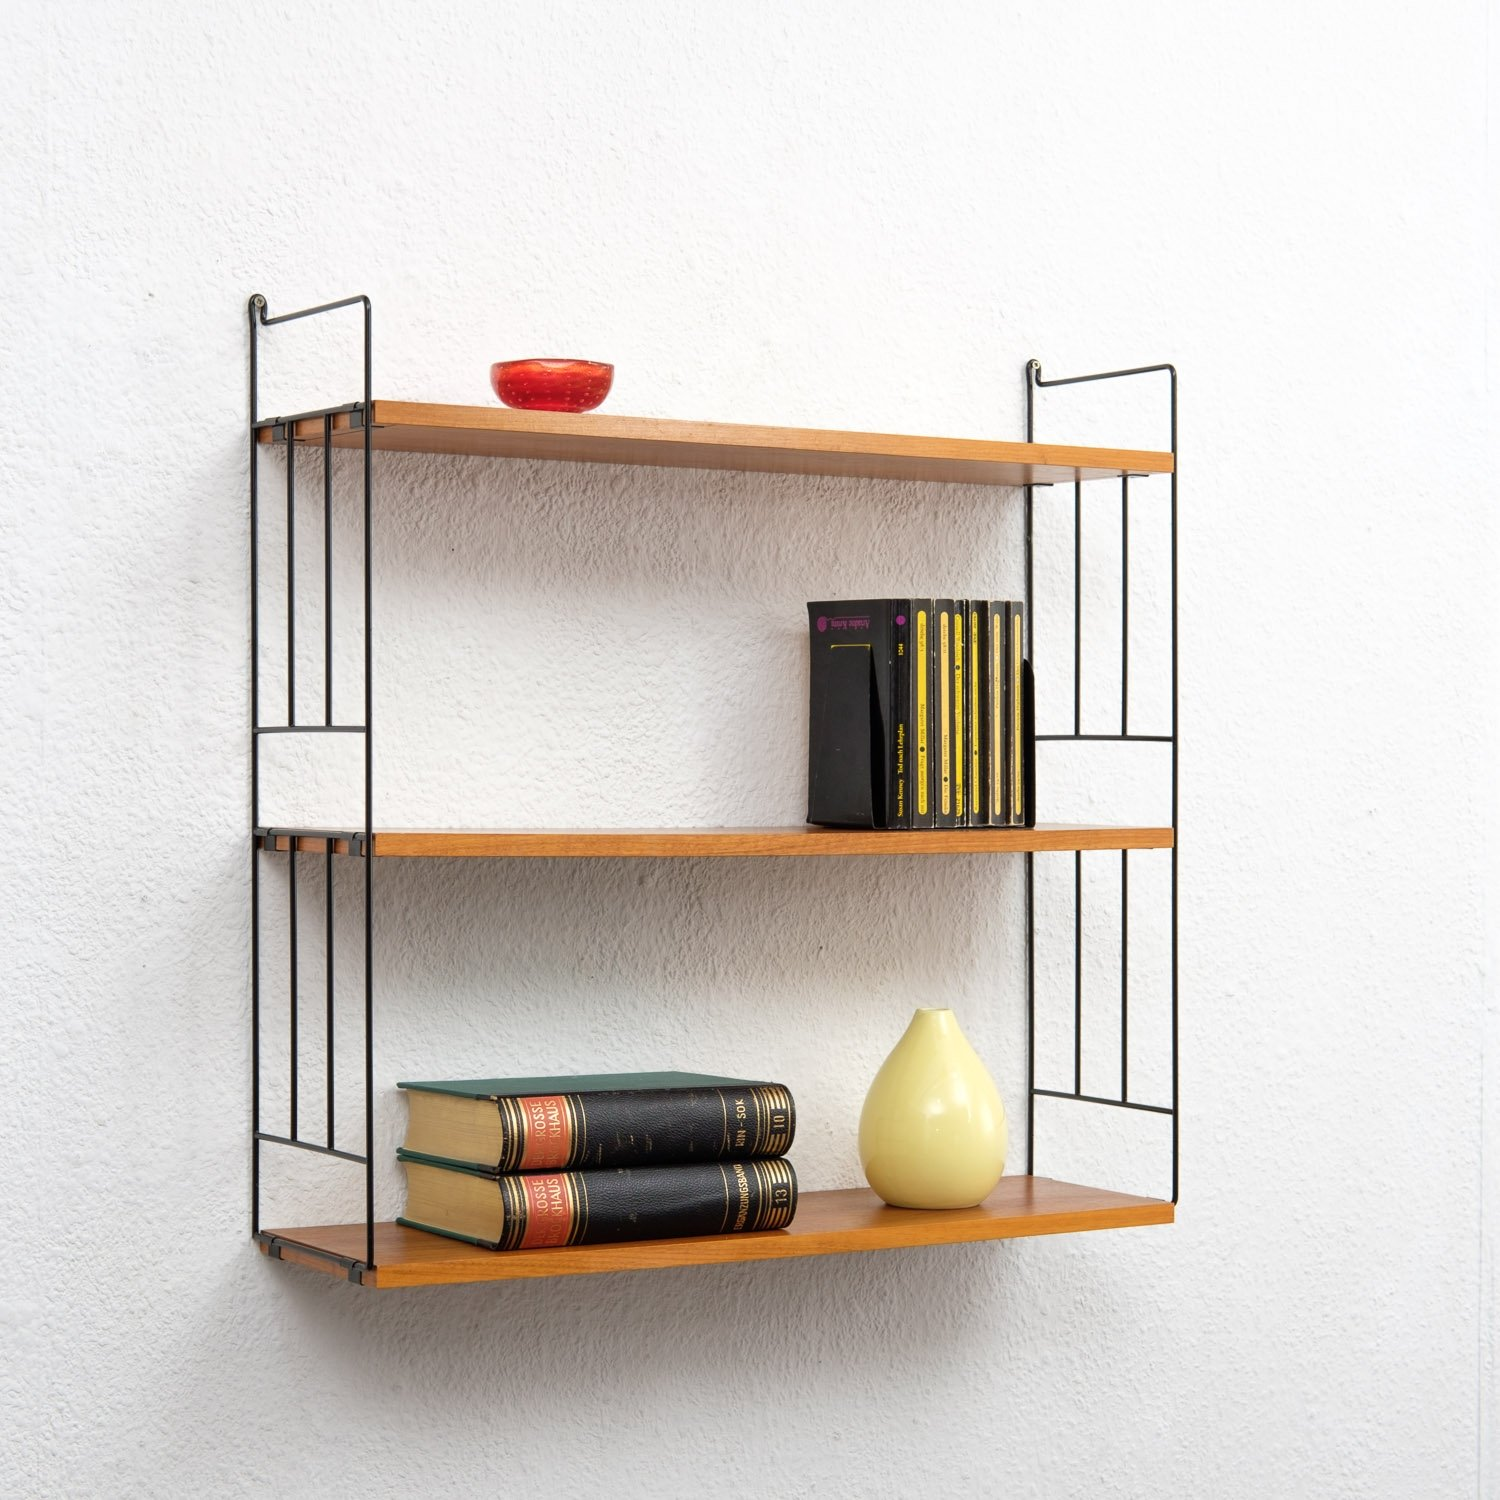 shelf wall ikea shelves hensvik leyko spaces en complete storage skoyro ekby kafe hemnes